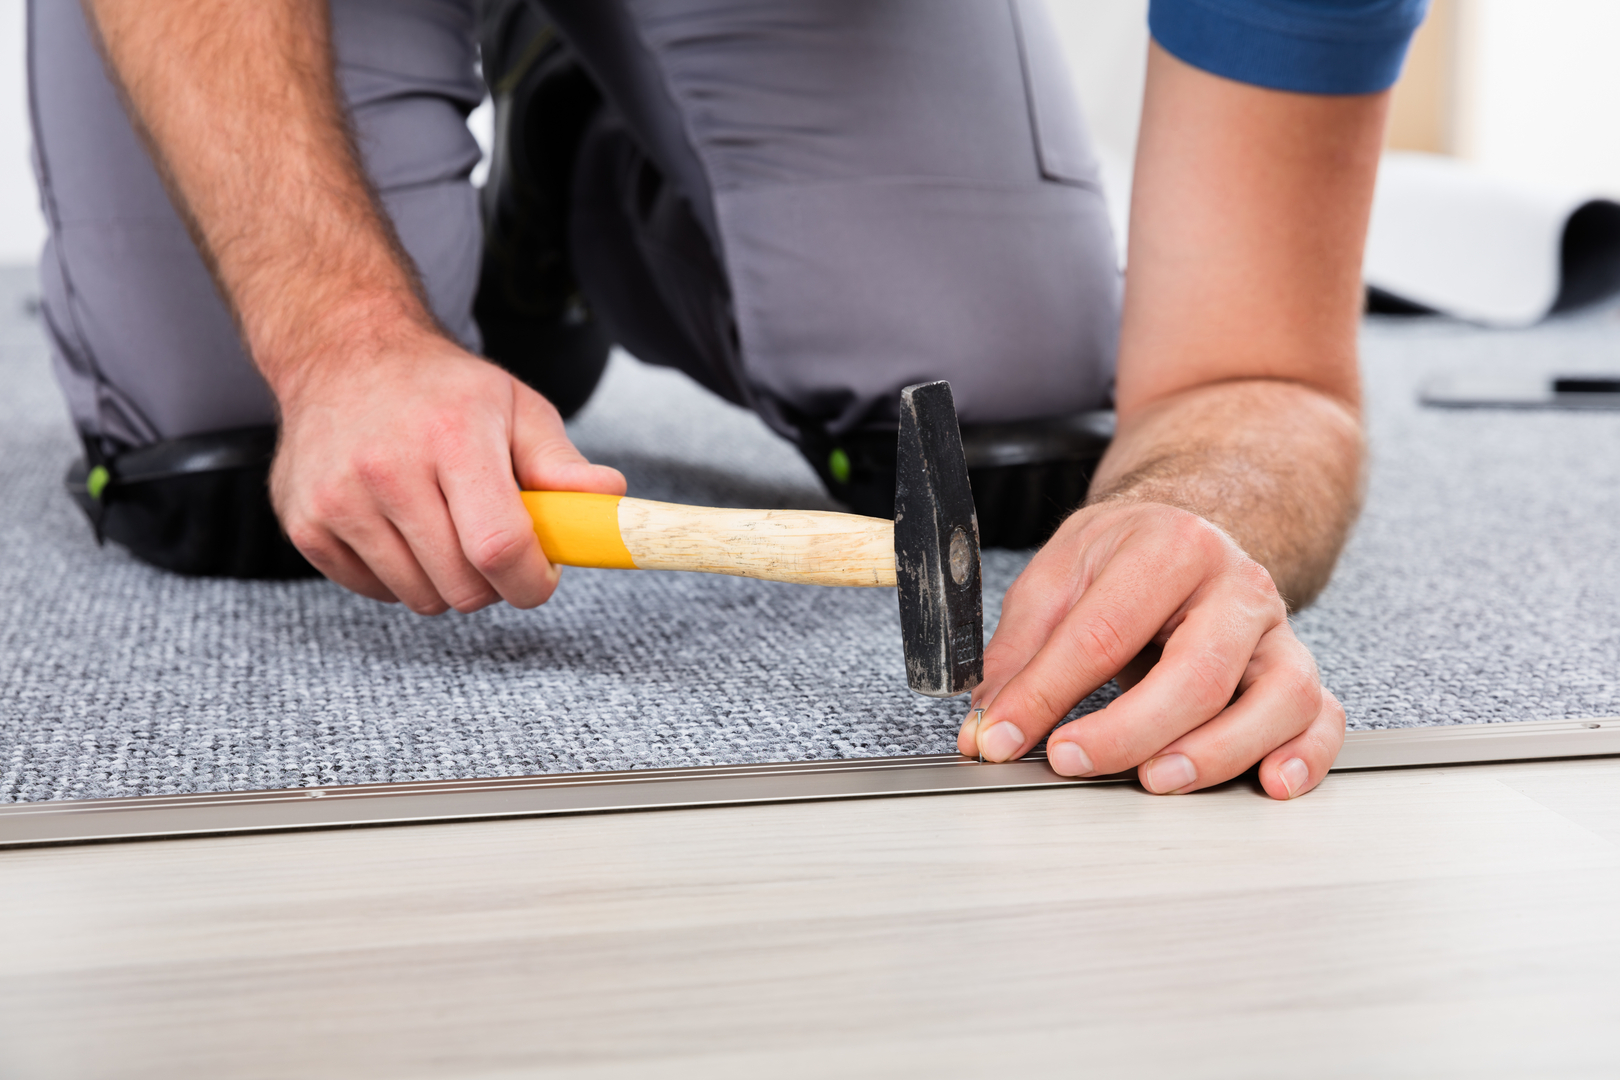 Carpet cleaning tile and grout cleaning oops steam cleaning name dailygadgetfo Choice Image